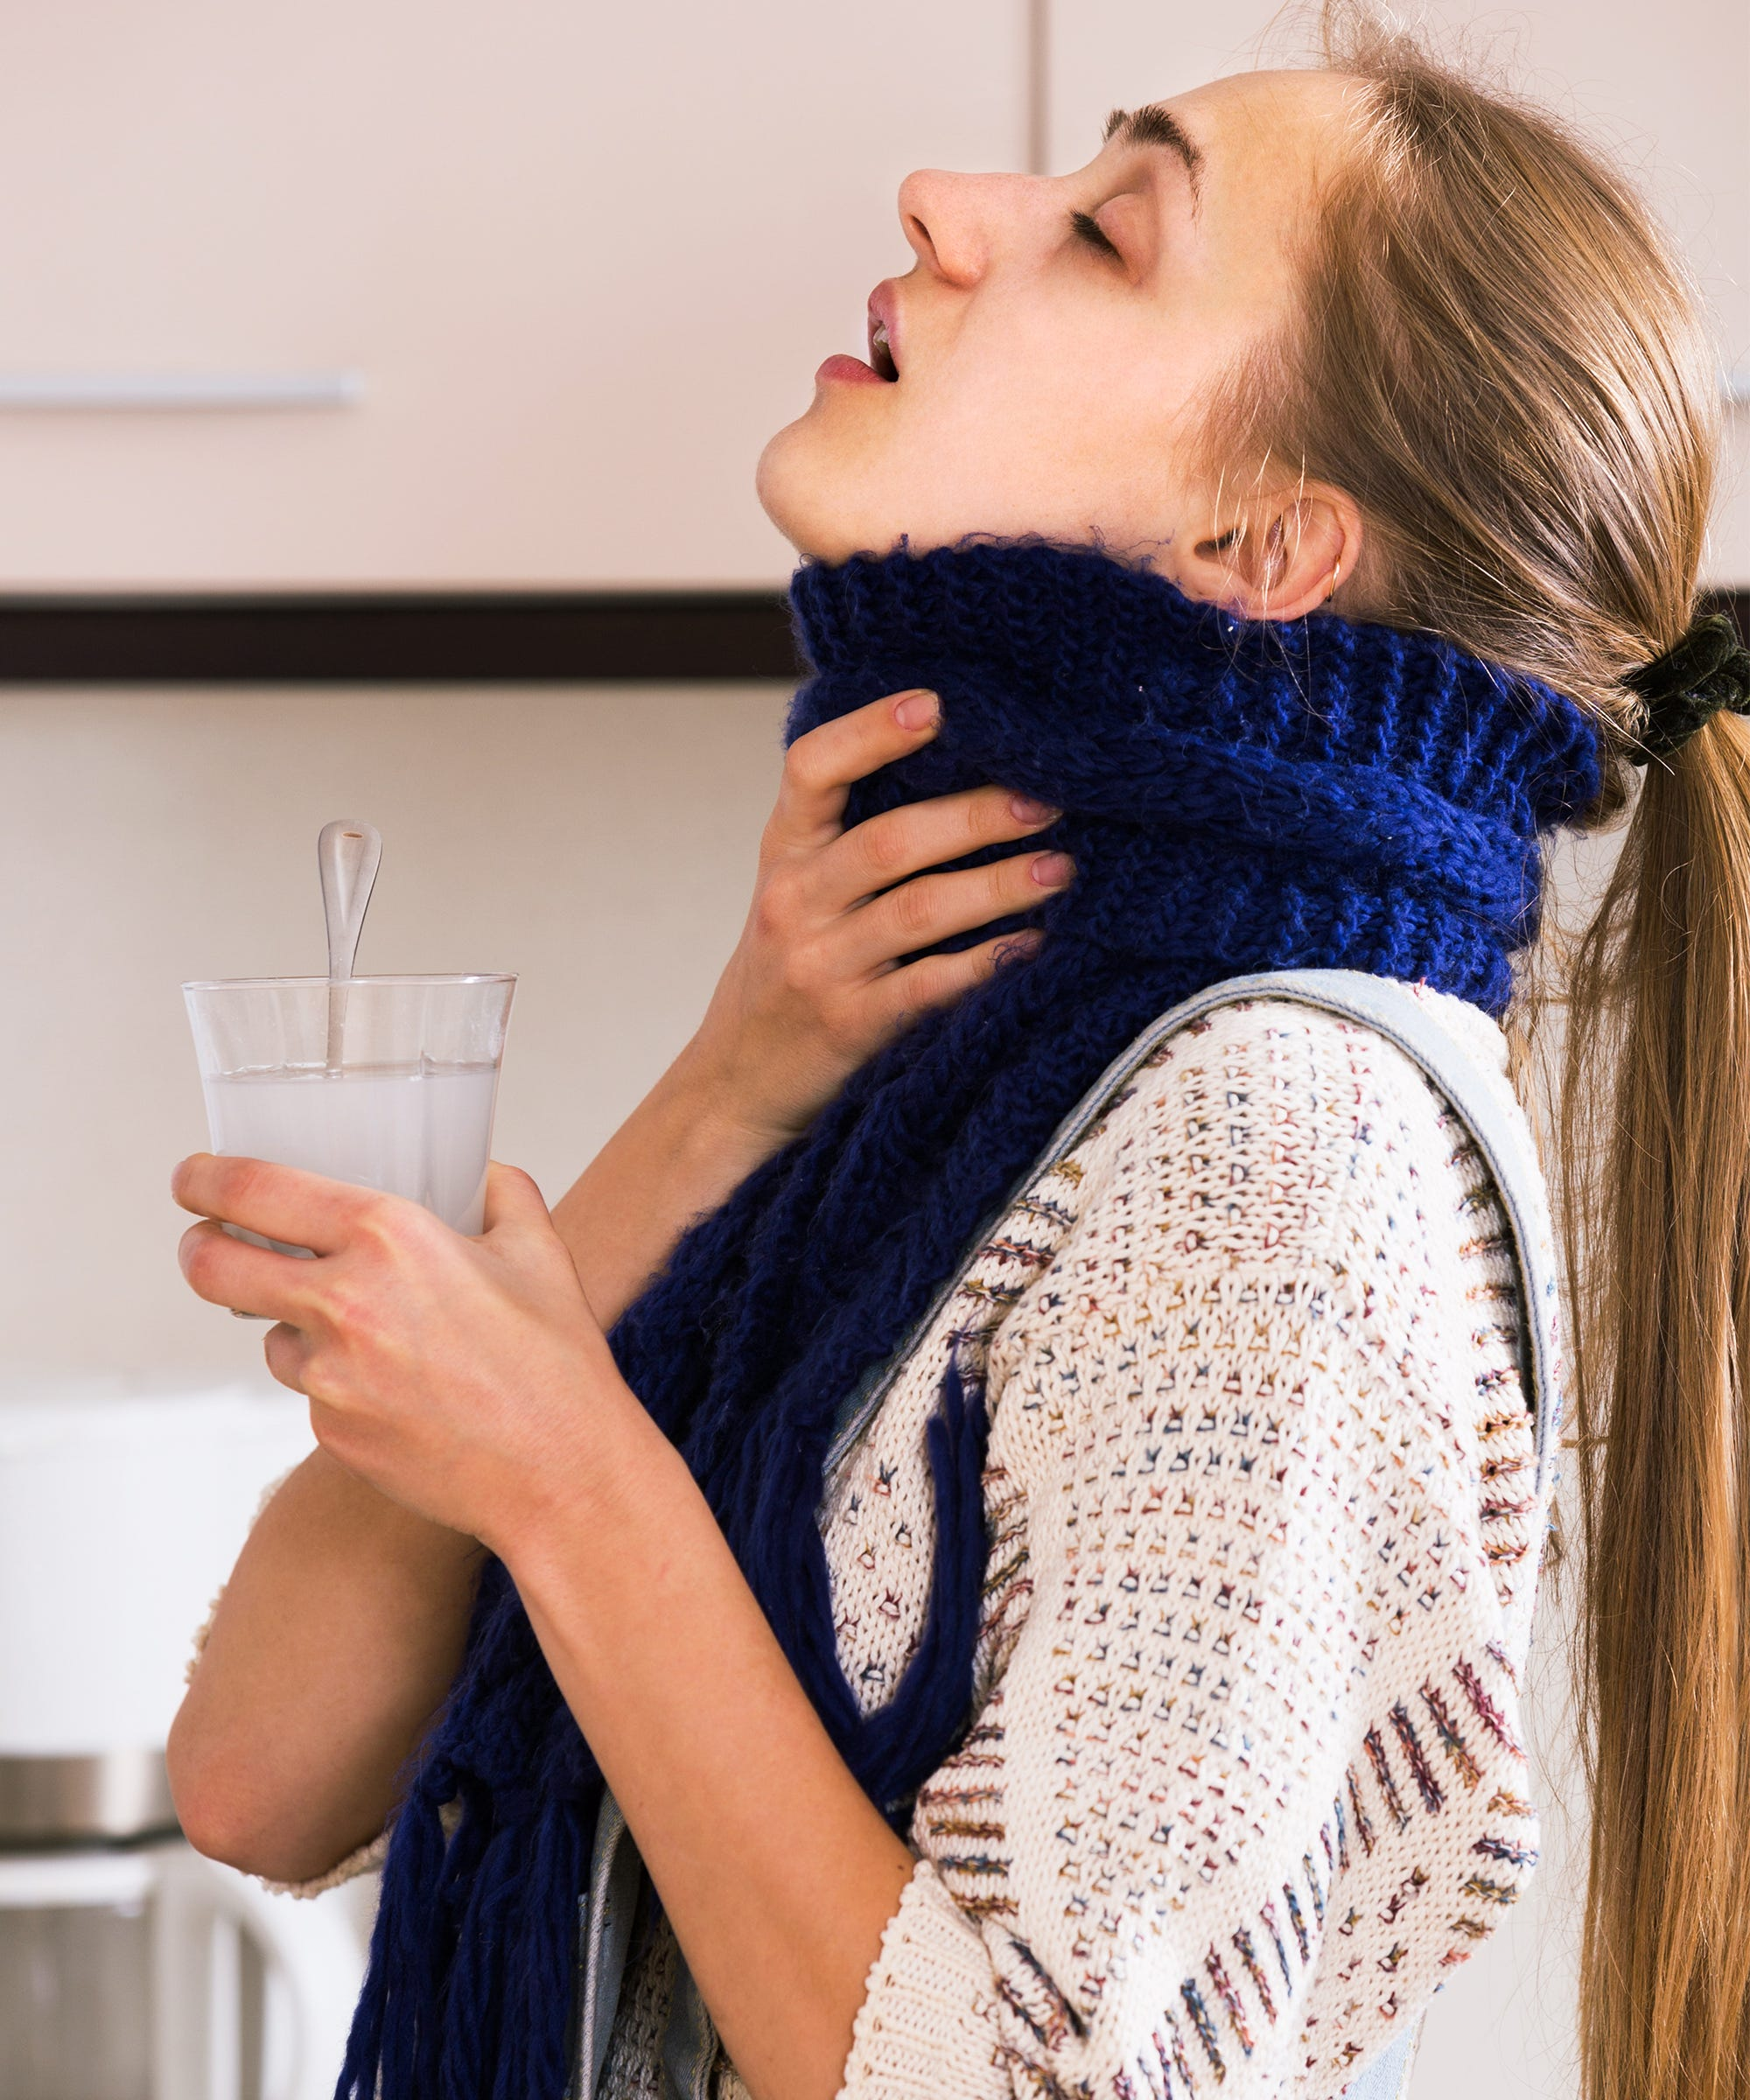 How To Get Rid Of Sore Throat Fast, Painful Swallowing